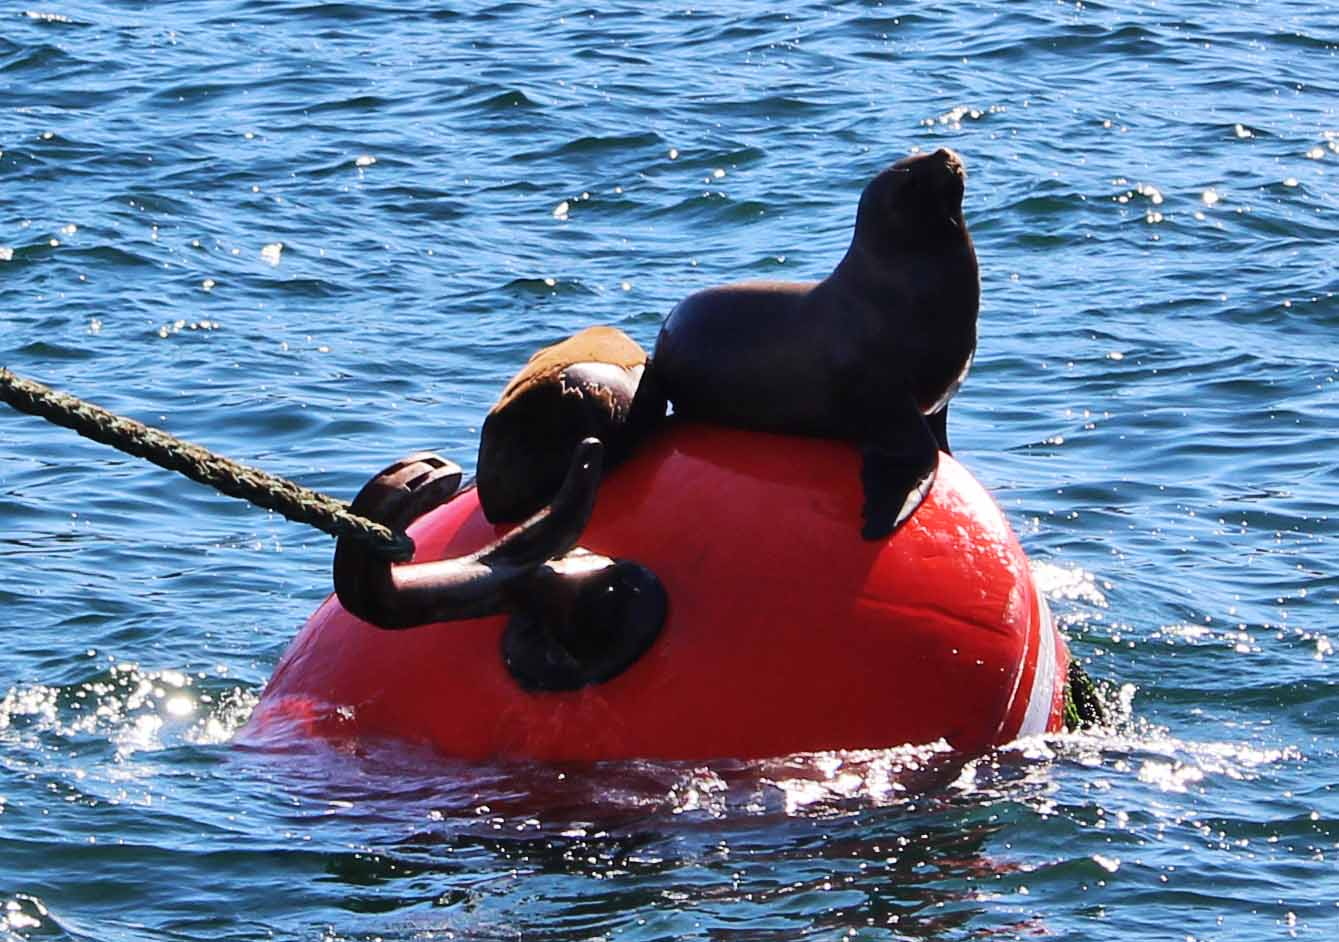 Sea Lions on Boye, Inca to Inuit, Navimag